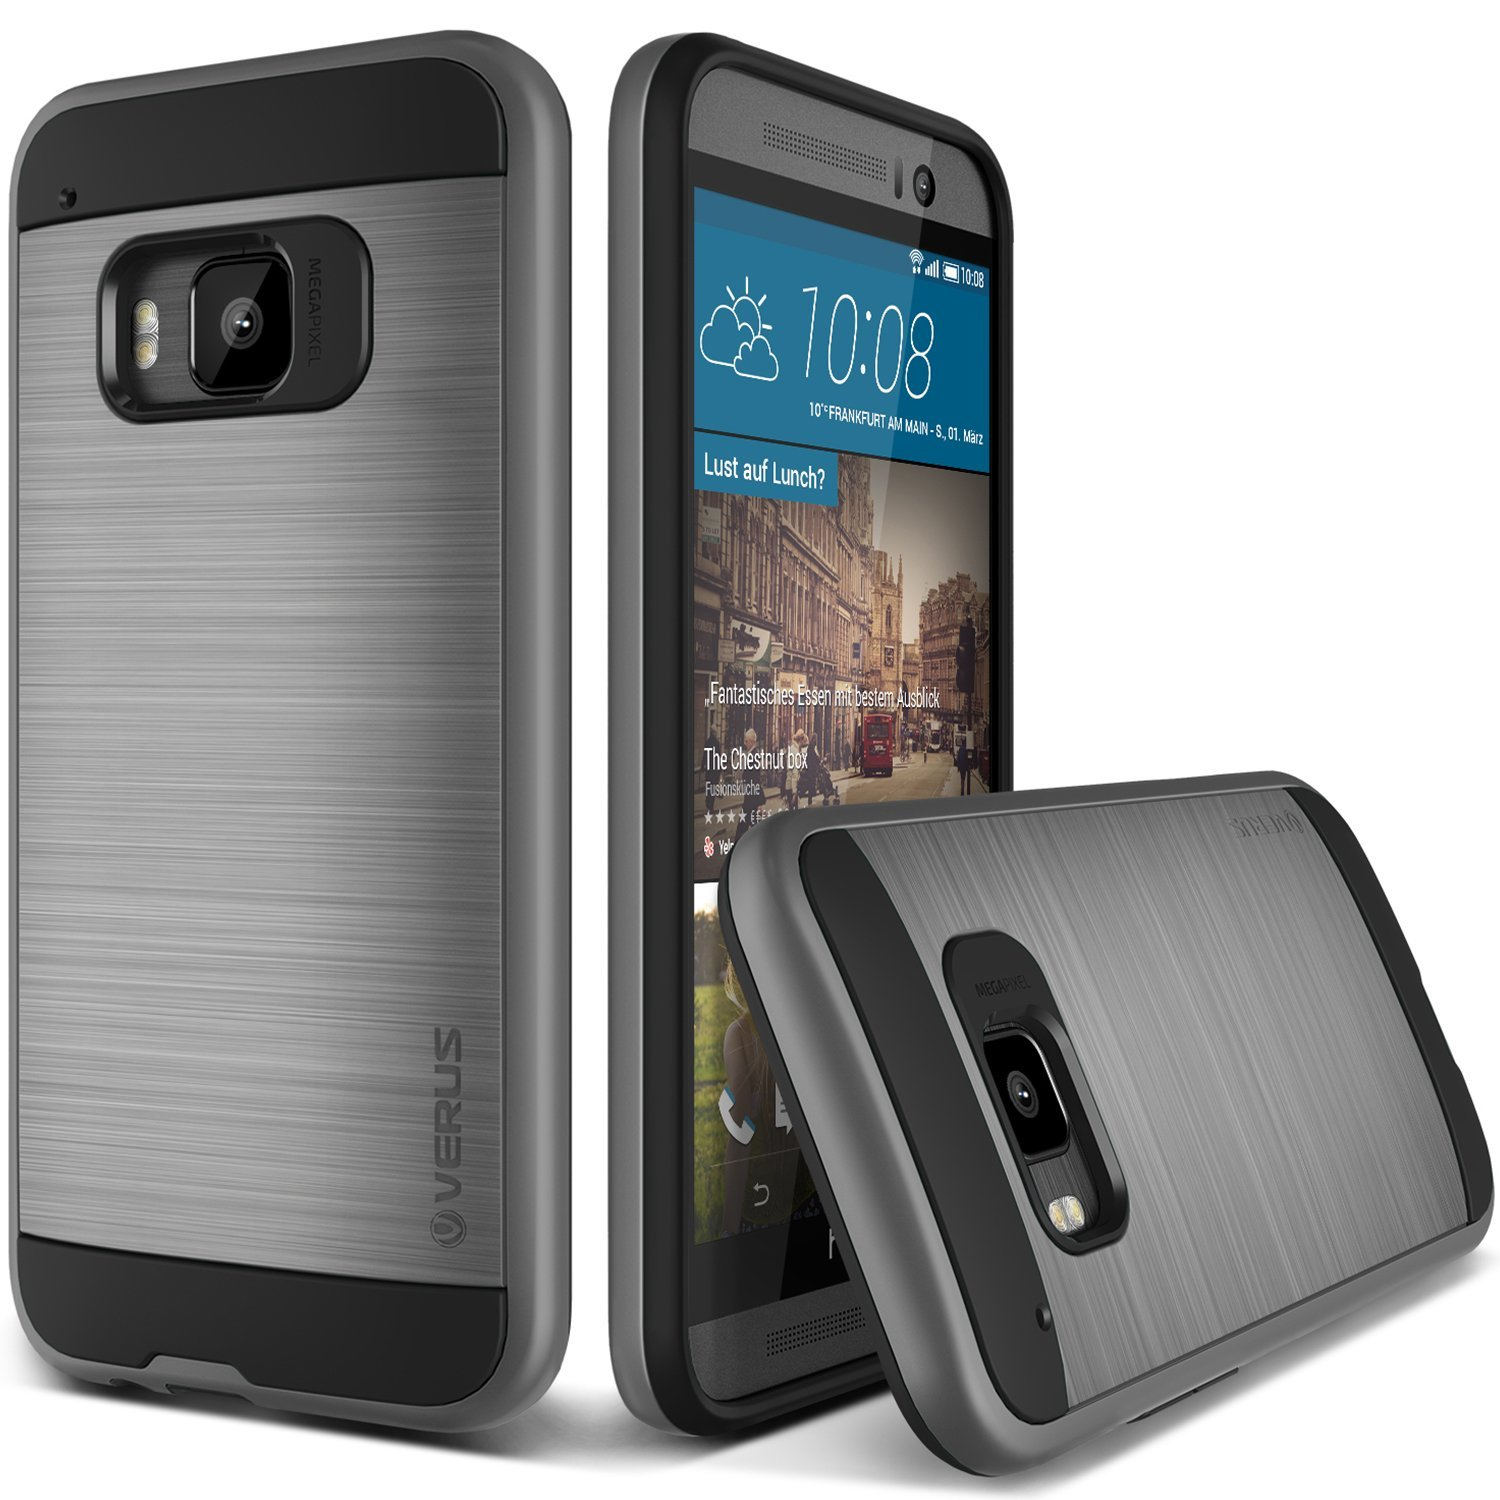 best htc one m9 case, m9 cases, htc one m9 cases